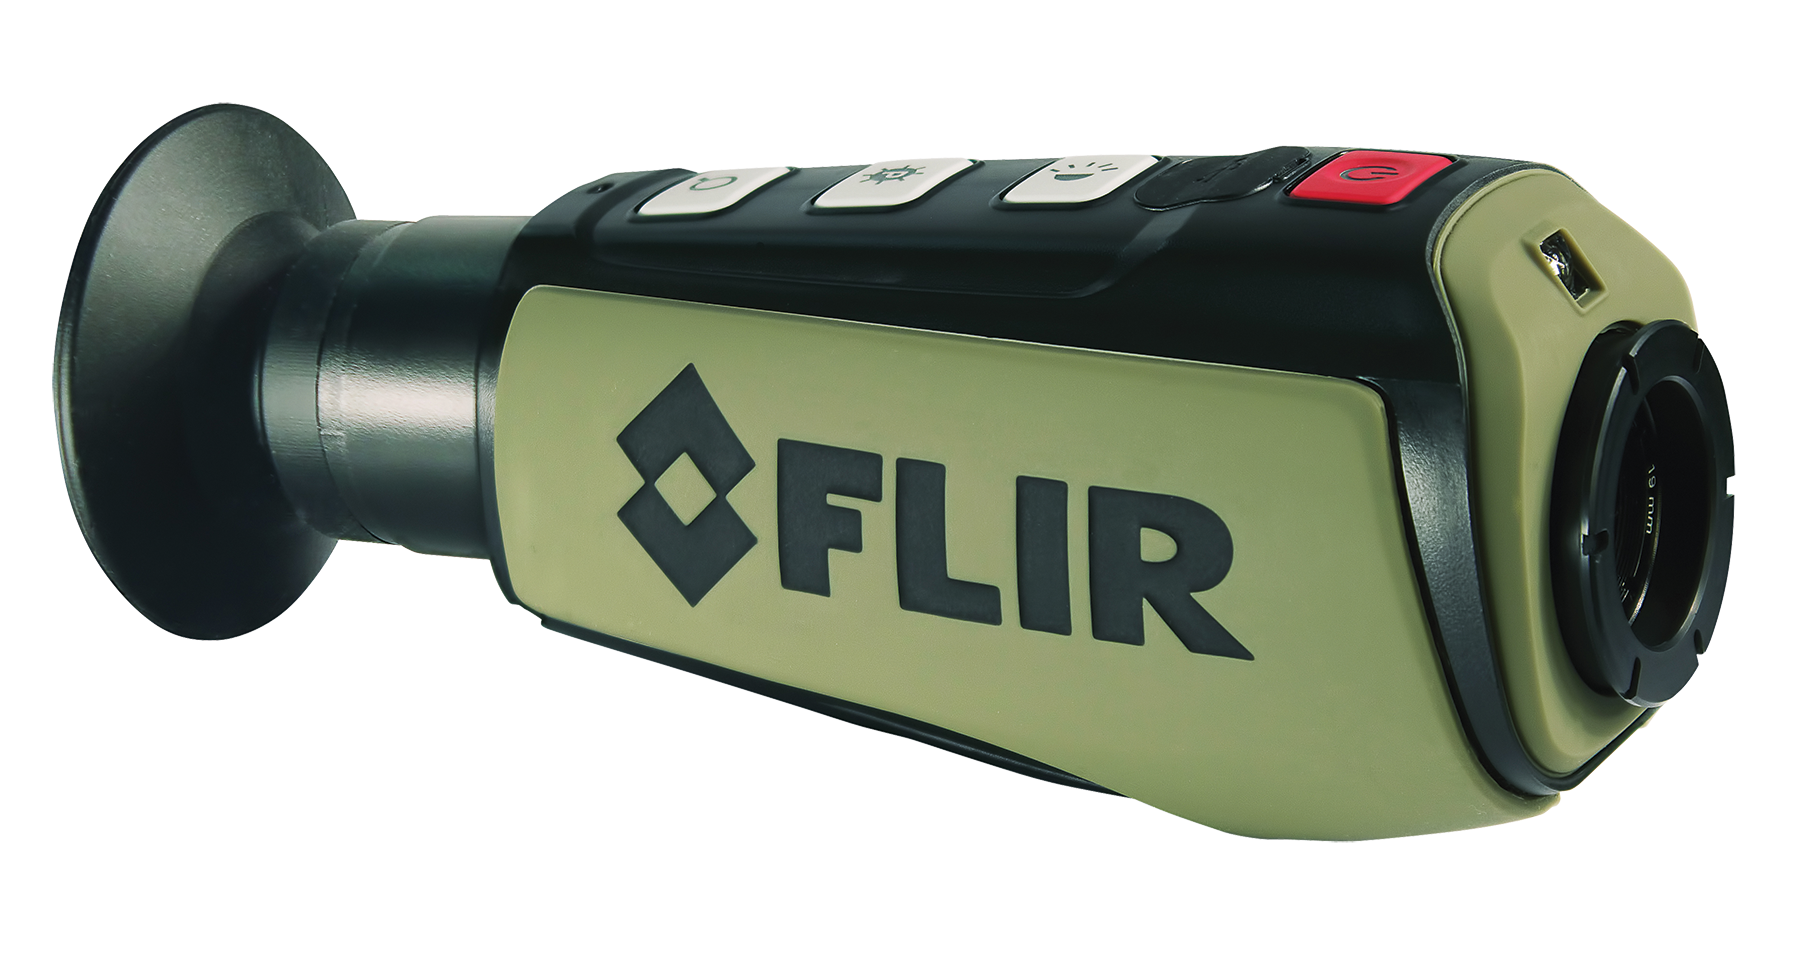 FLIR PS24 Scout Thermal Night Vision 350 yds 240x180 pixels Li-Ion Green/Black